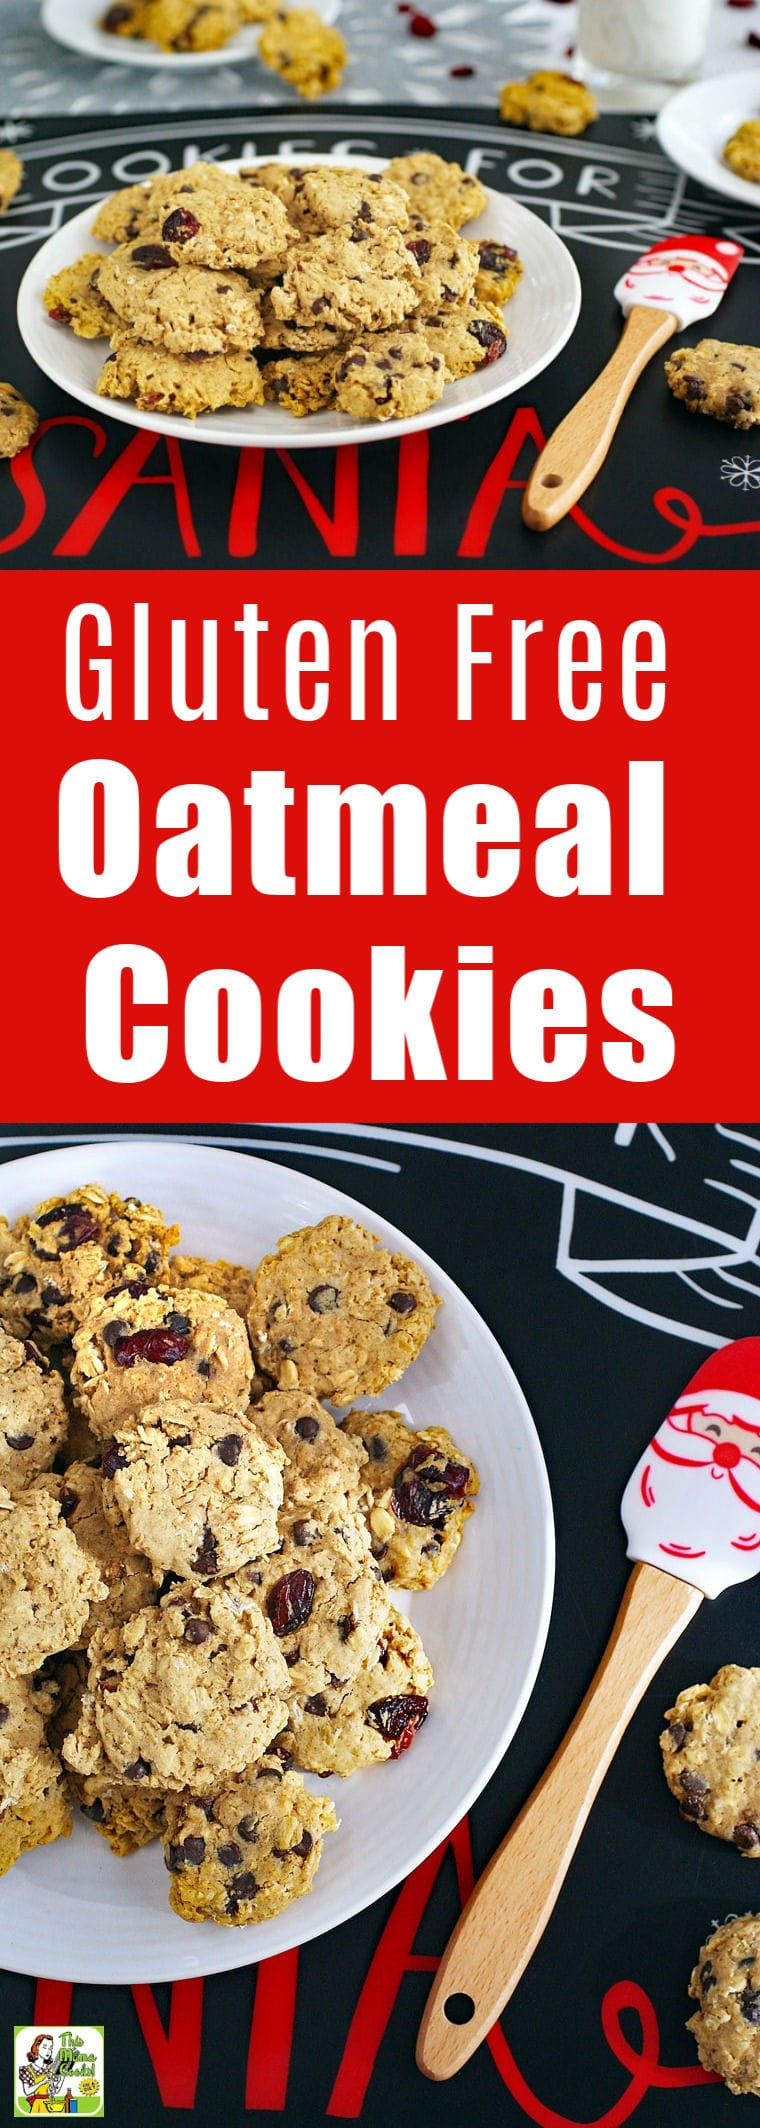 Gluten Free Oatmeal Cookies for Cookie Swaps is the best oatmeal raisin cookie recipe for Christmas cookie exchanges and homemade holiday gifts. By adding ingredients like cranberries, chocolate chips or raisins, you can make a variety of gluten-free oatmeal cookies. These holiday cookie swap cookies are also dairy free. #glutenfree #dairyfree #cookies #cookieswap #cookieexchange #baking